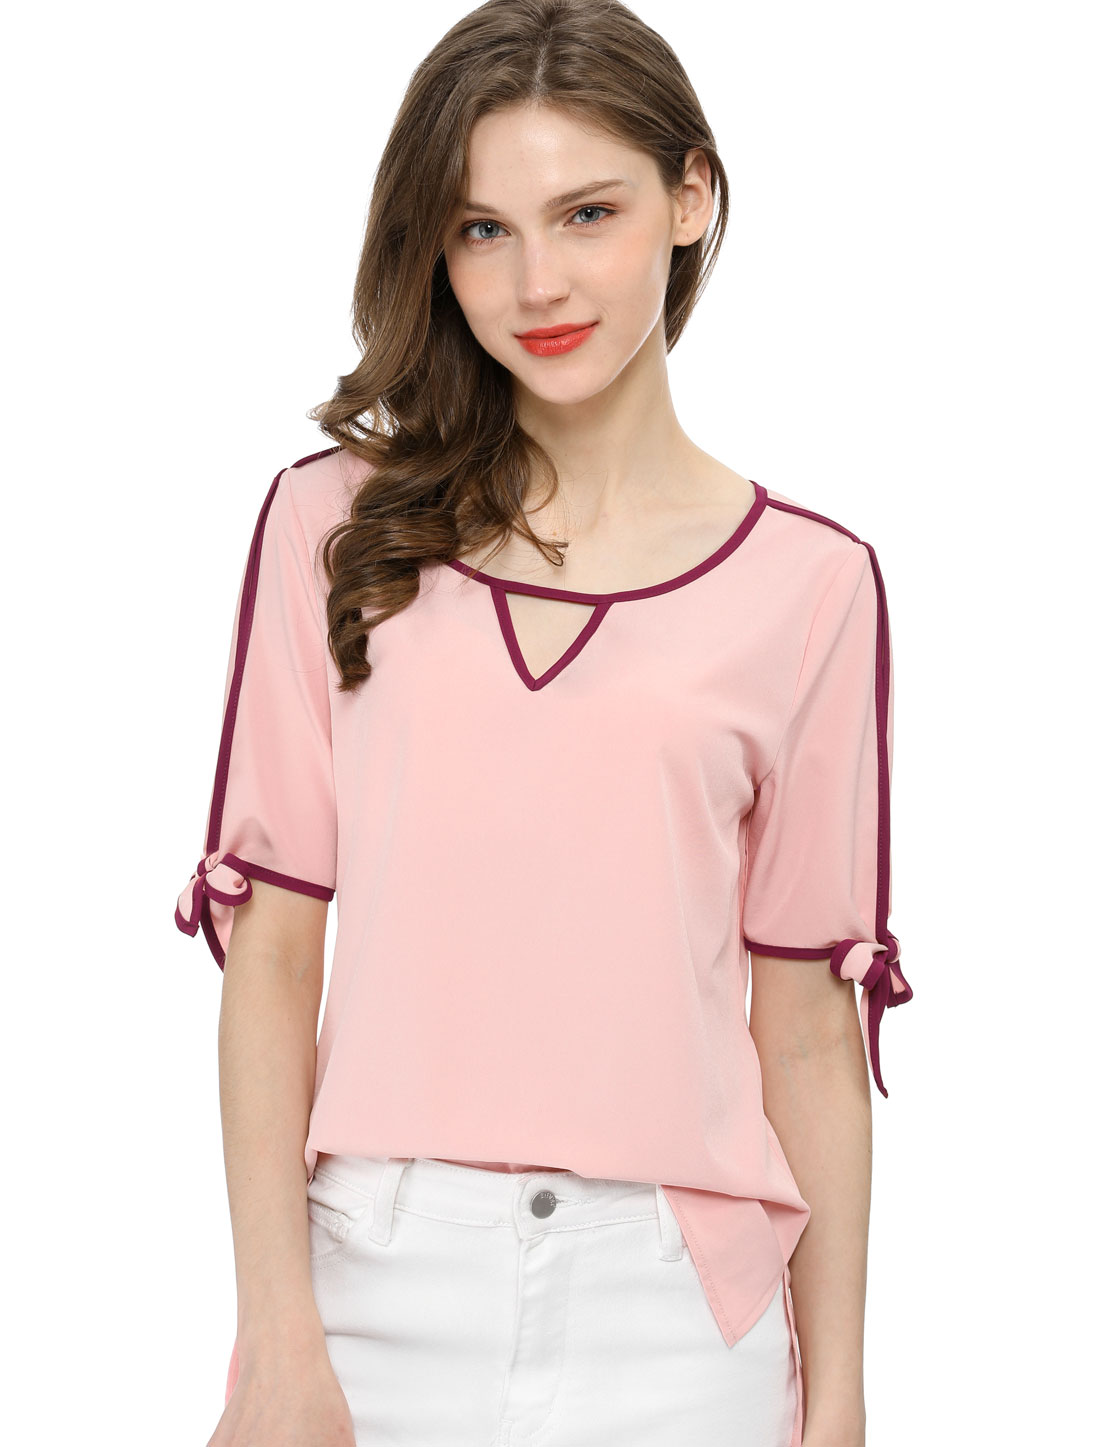 Allegra K Women V Cut-out Front Contrast Bow Tie Cuffs Top Pink S